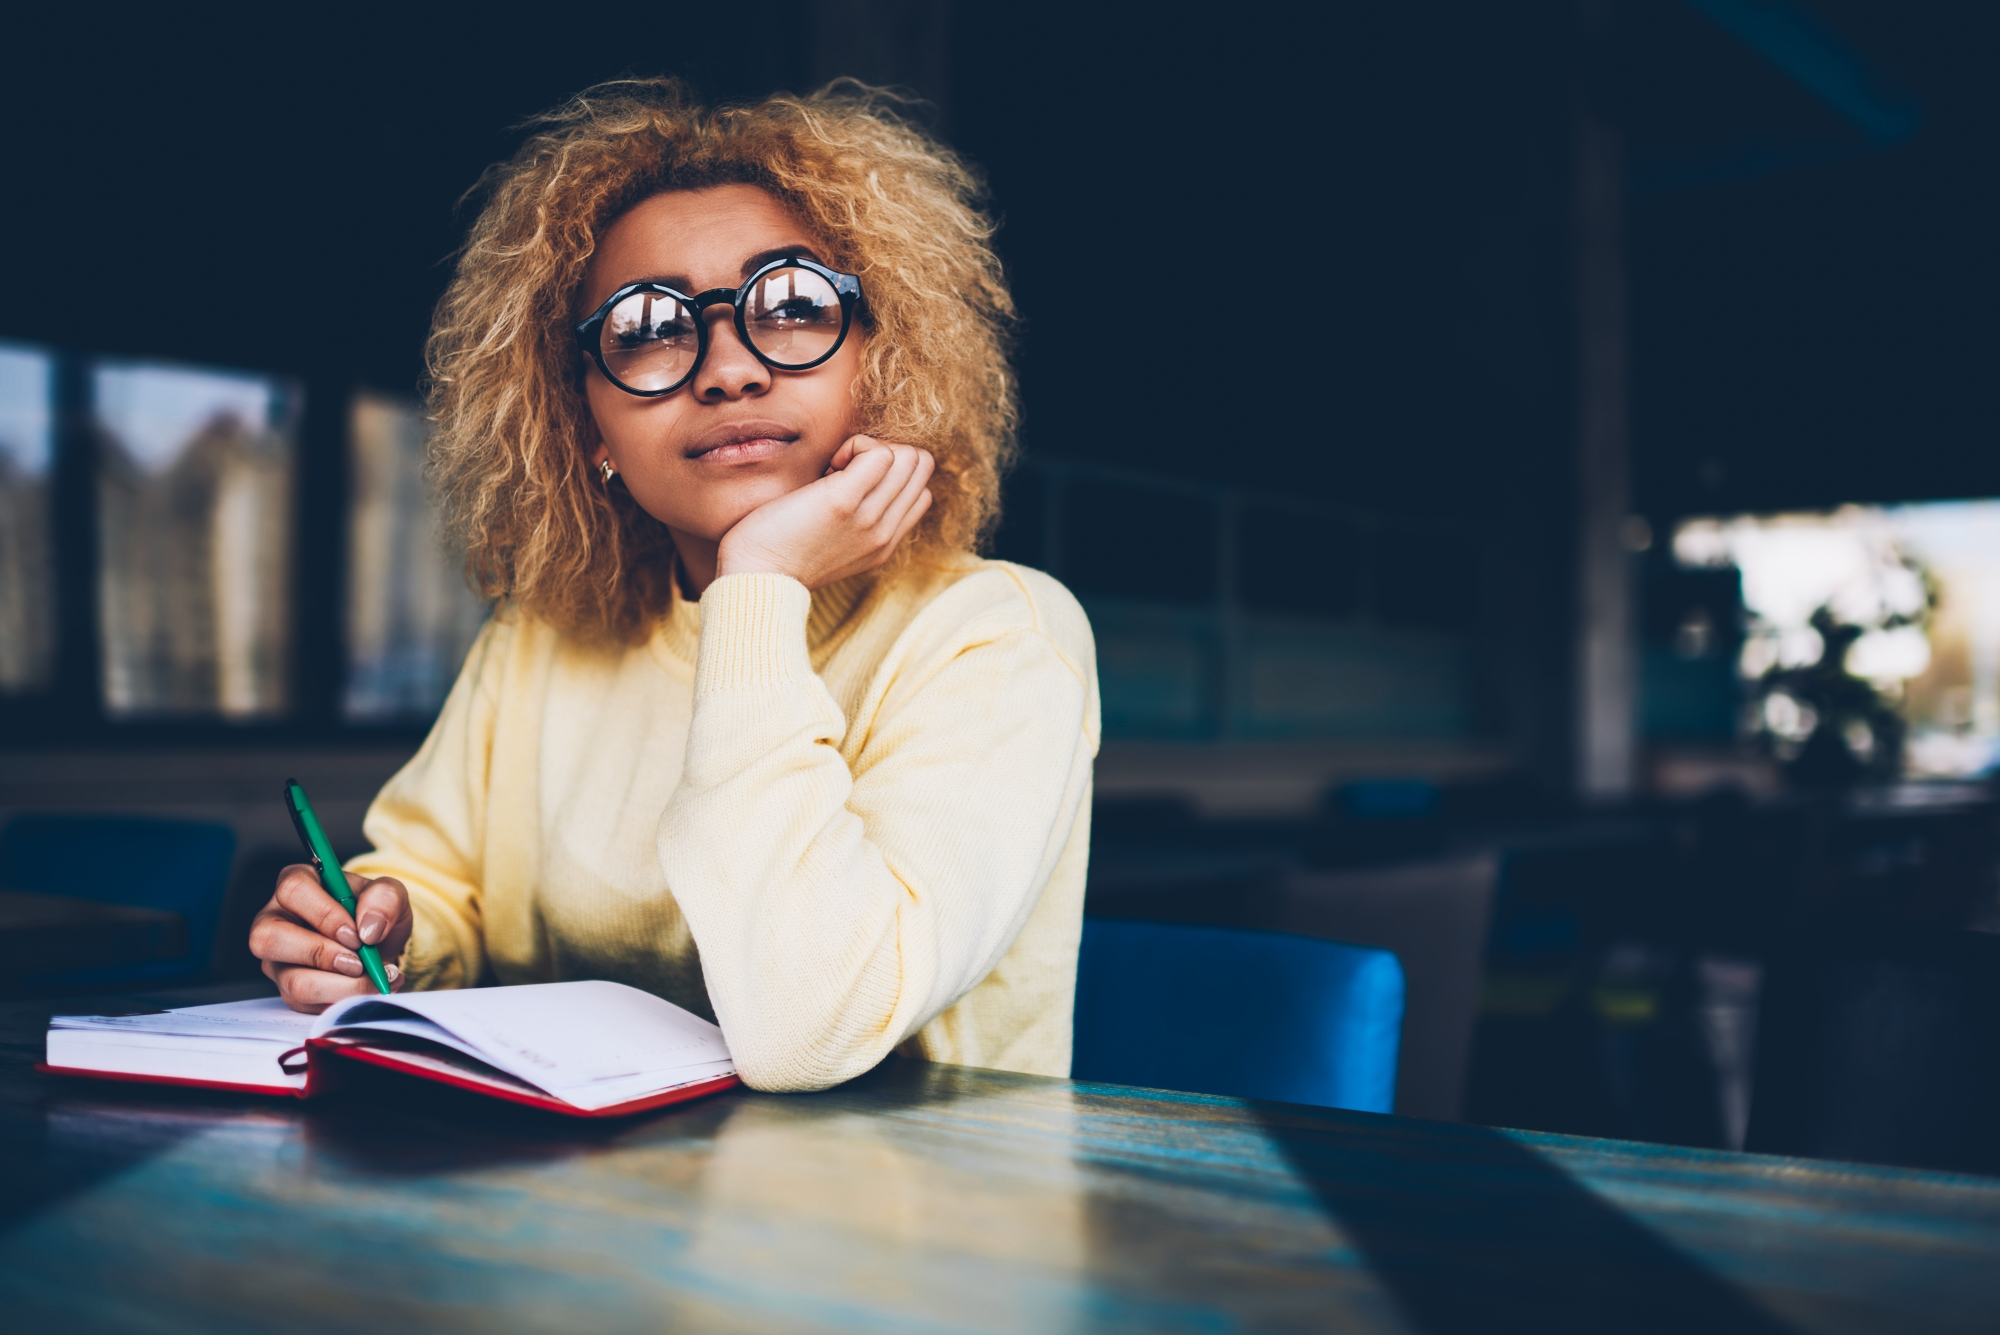 young woman thinking of resolutions writing in notepad